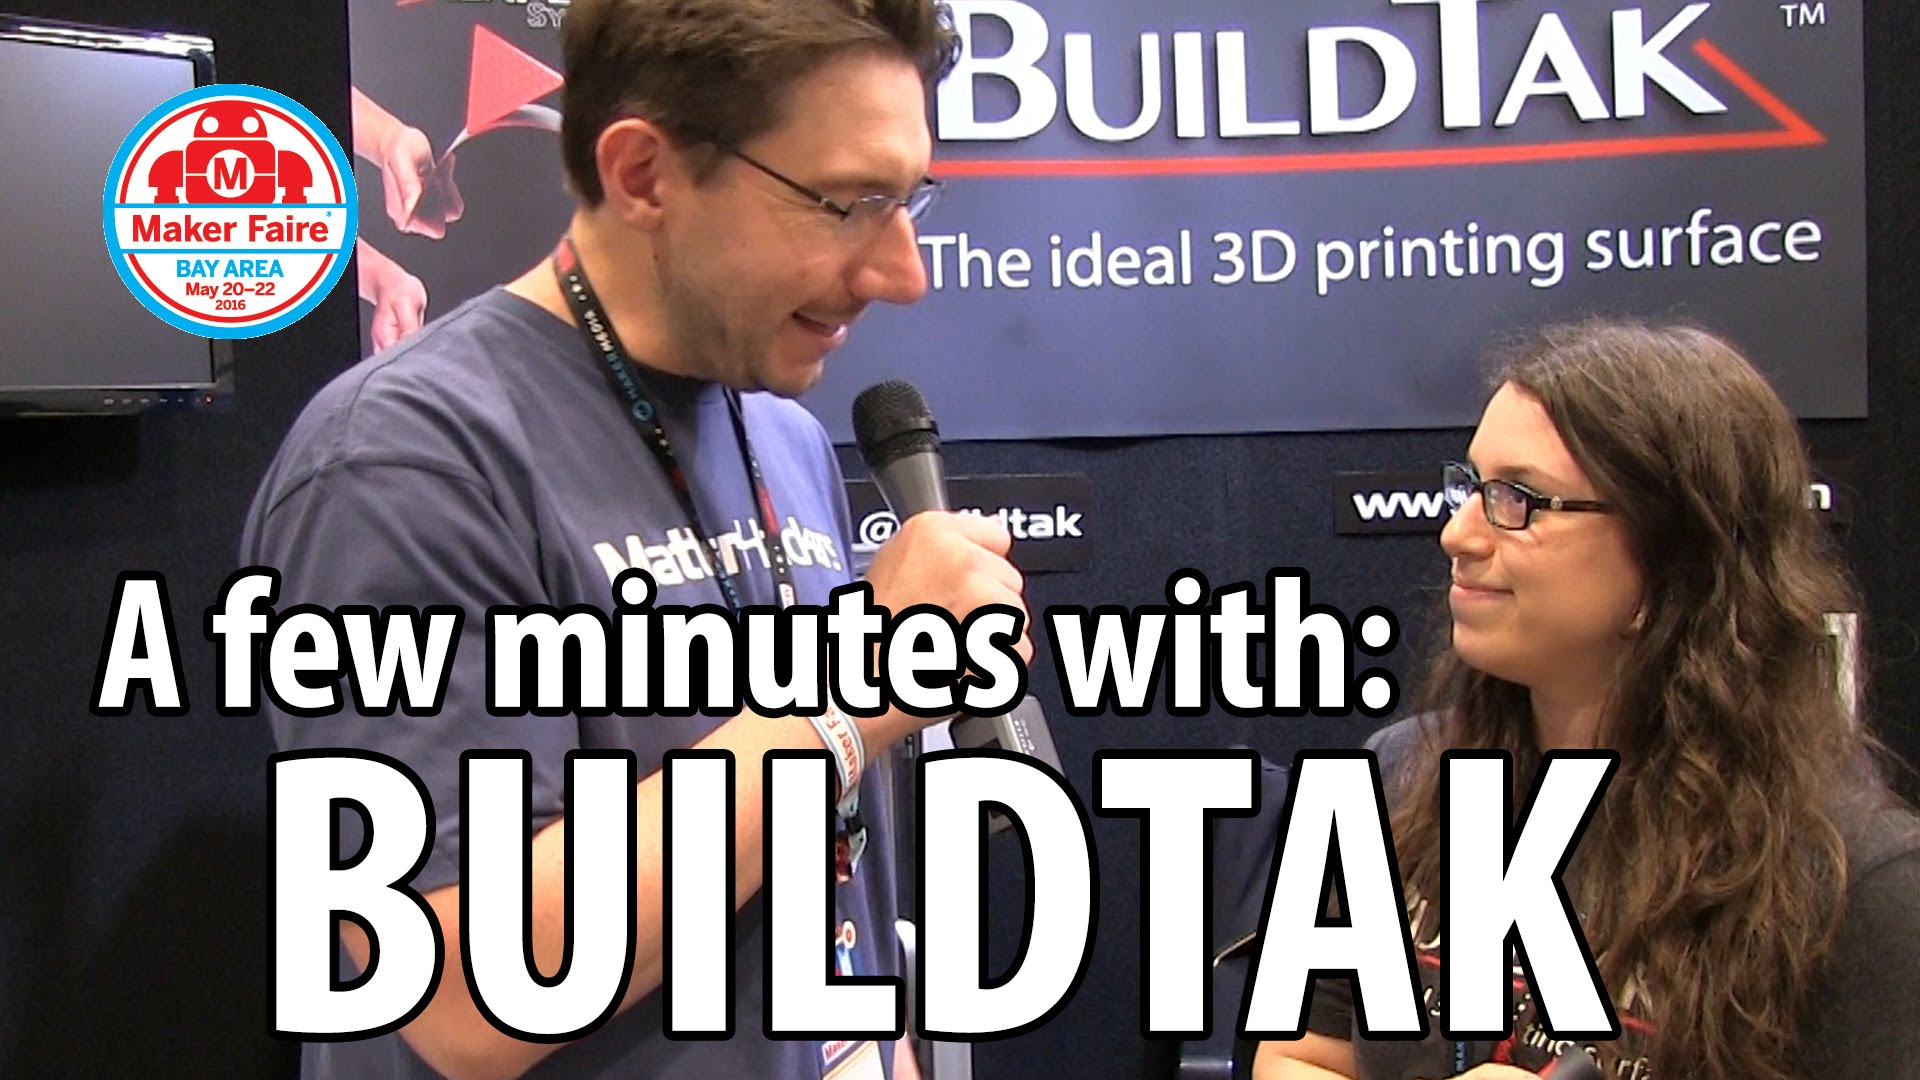 3D Printing: BuildTak at Maker Faire 2016